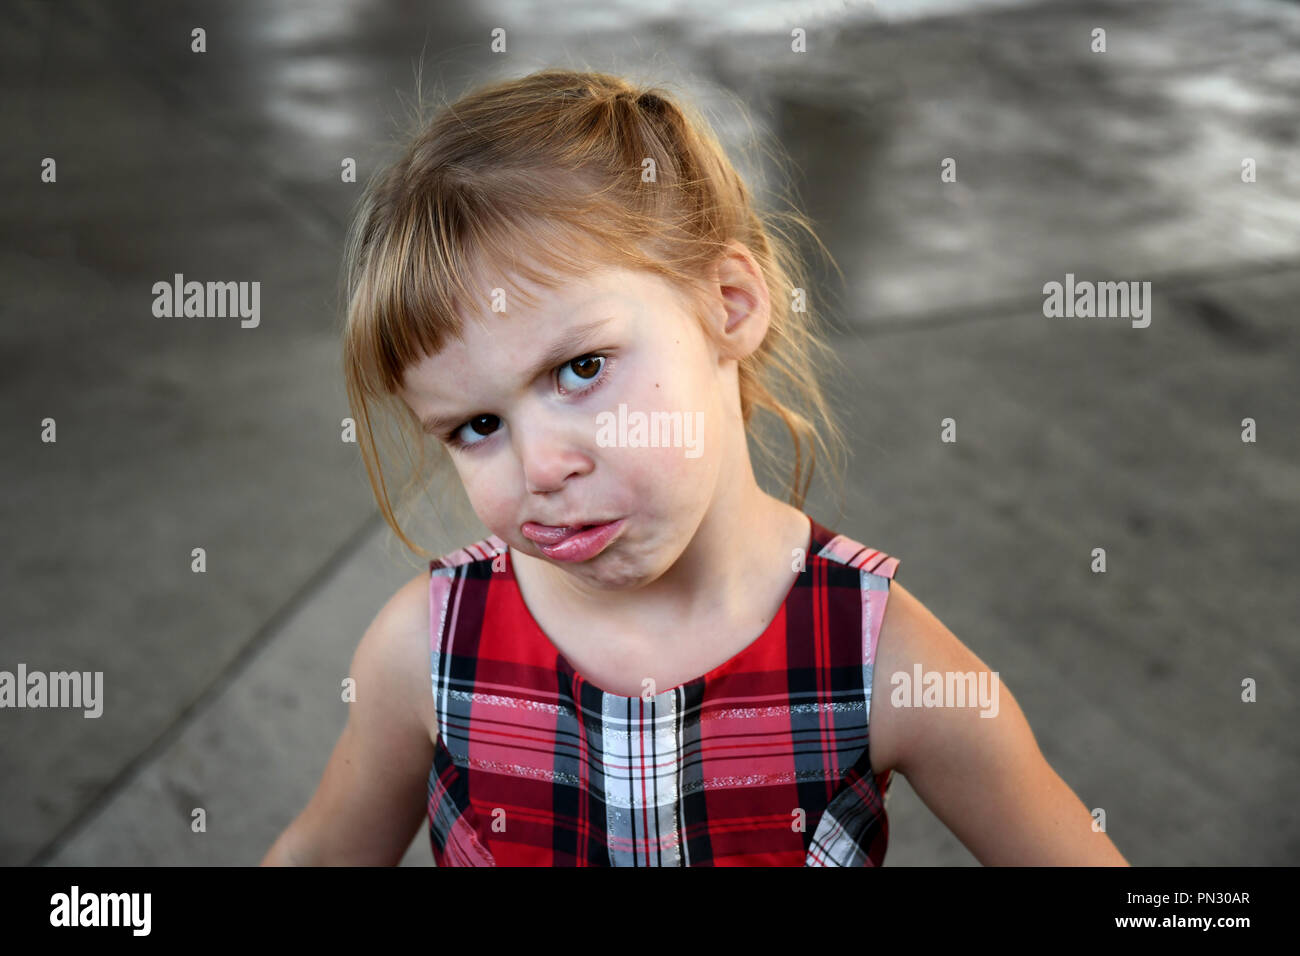 4-year-old girl making a silly face Stock Photo